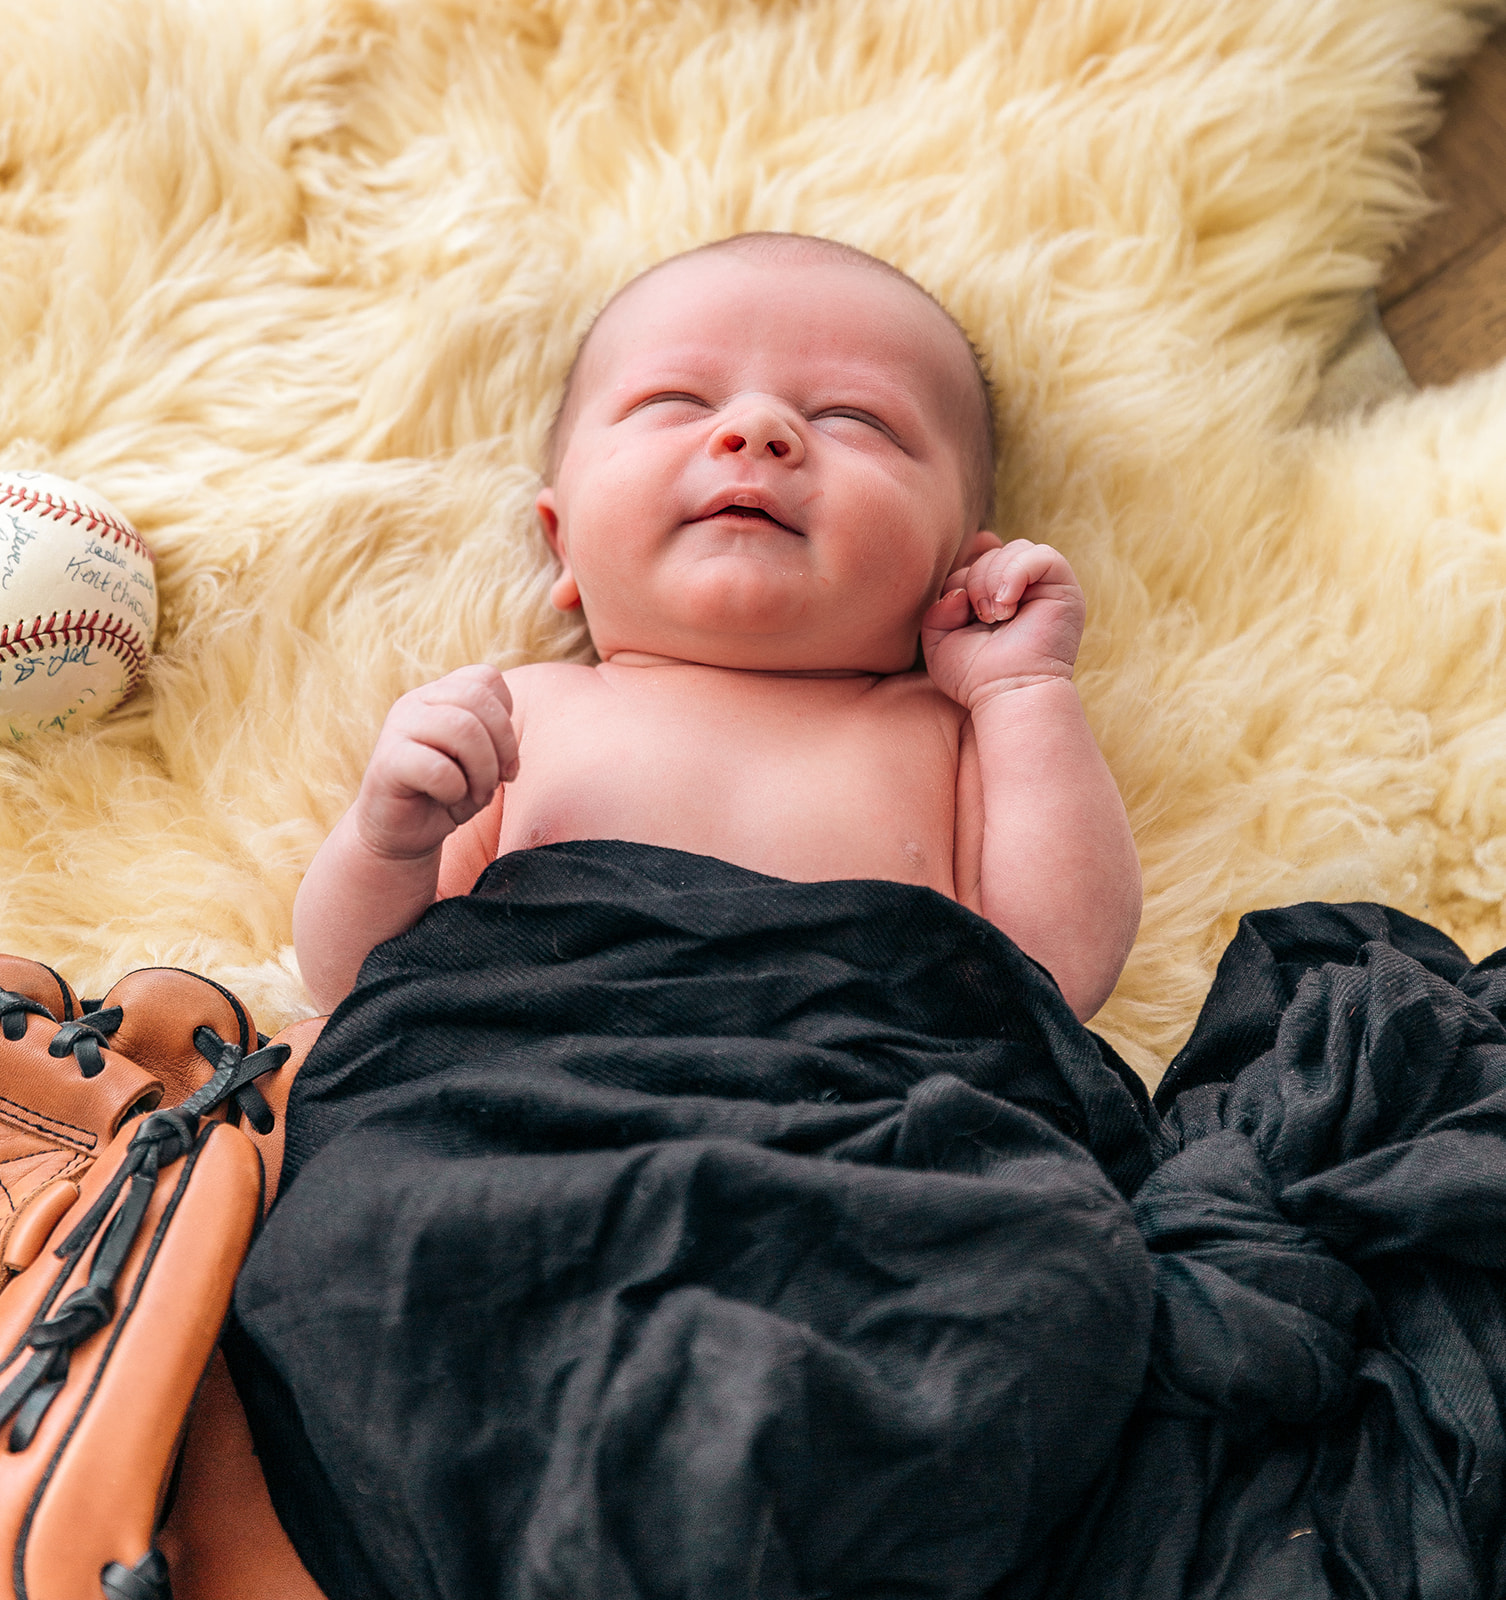 little boy with baseball props baseball glove sport little man newborn photo session newborn pose with baseball ball and glove little tyke boys are the best newborn baby pose inspiration ogden utah professional utah photographers bella alder photography inspiration #newbornsession #bundleofjoy #babyboy #babyboybeckham #littleangle #familygoals #ogden #utah #professionalphotographer #bellaalderphotography